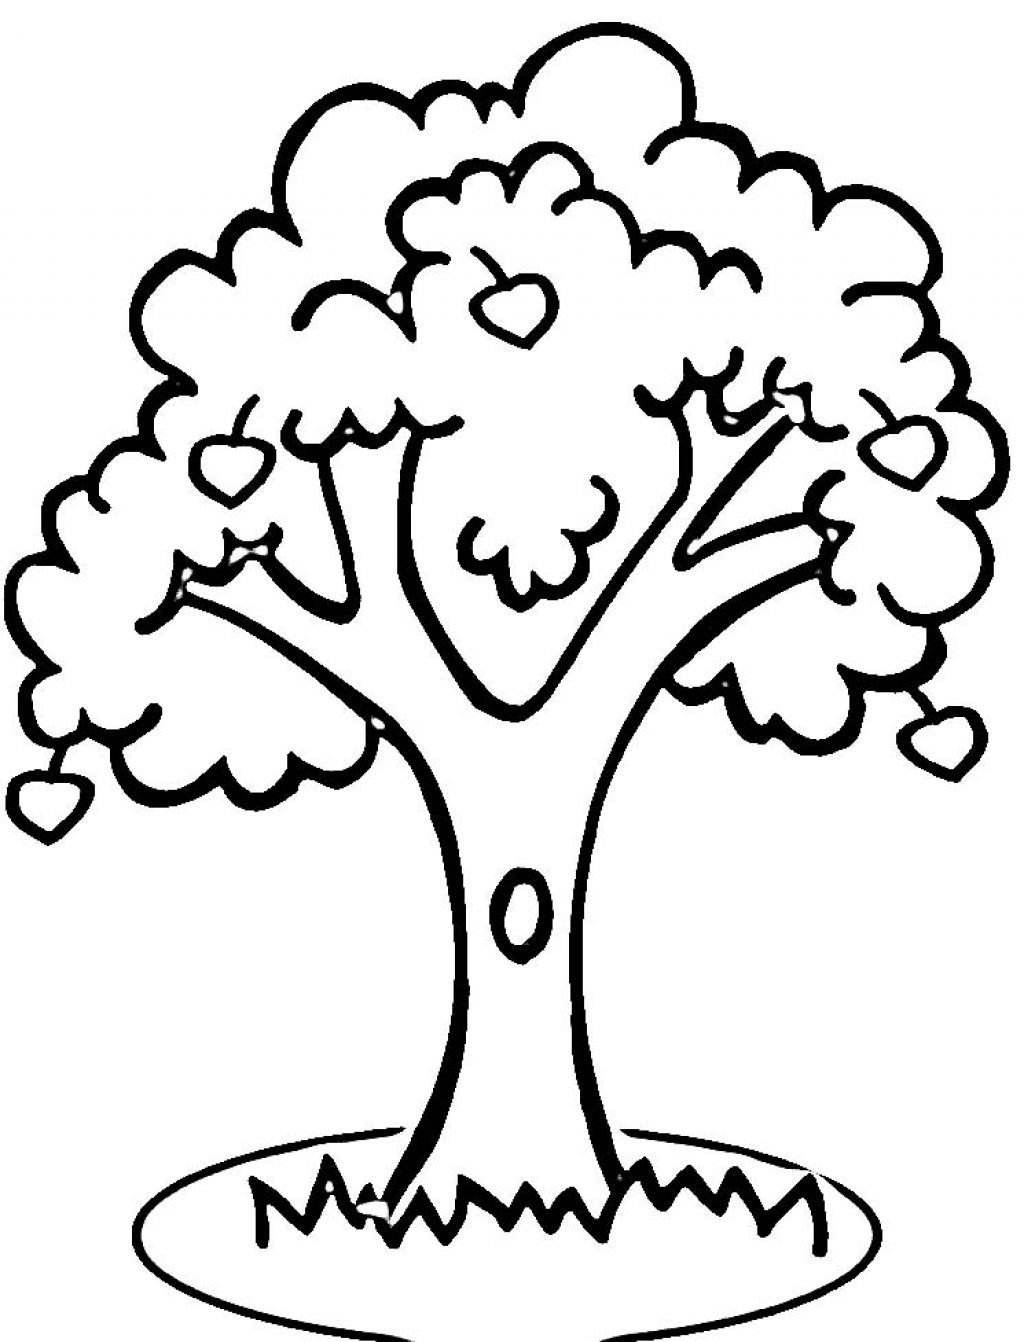 7 Habits Tree Coloring Page In 2020 Apple Coloring Pages Valentine Coloring Pages Tree Coloring Page